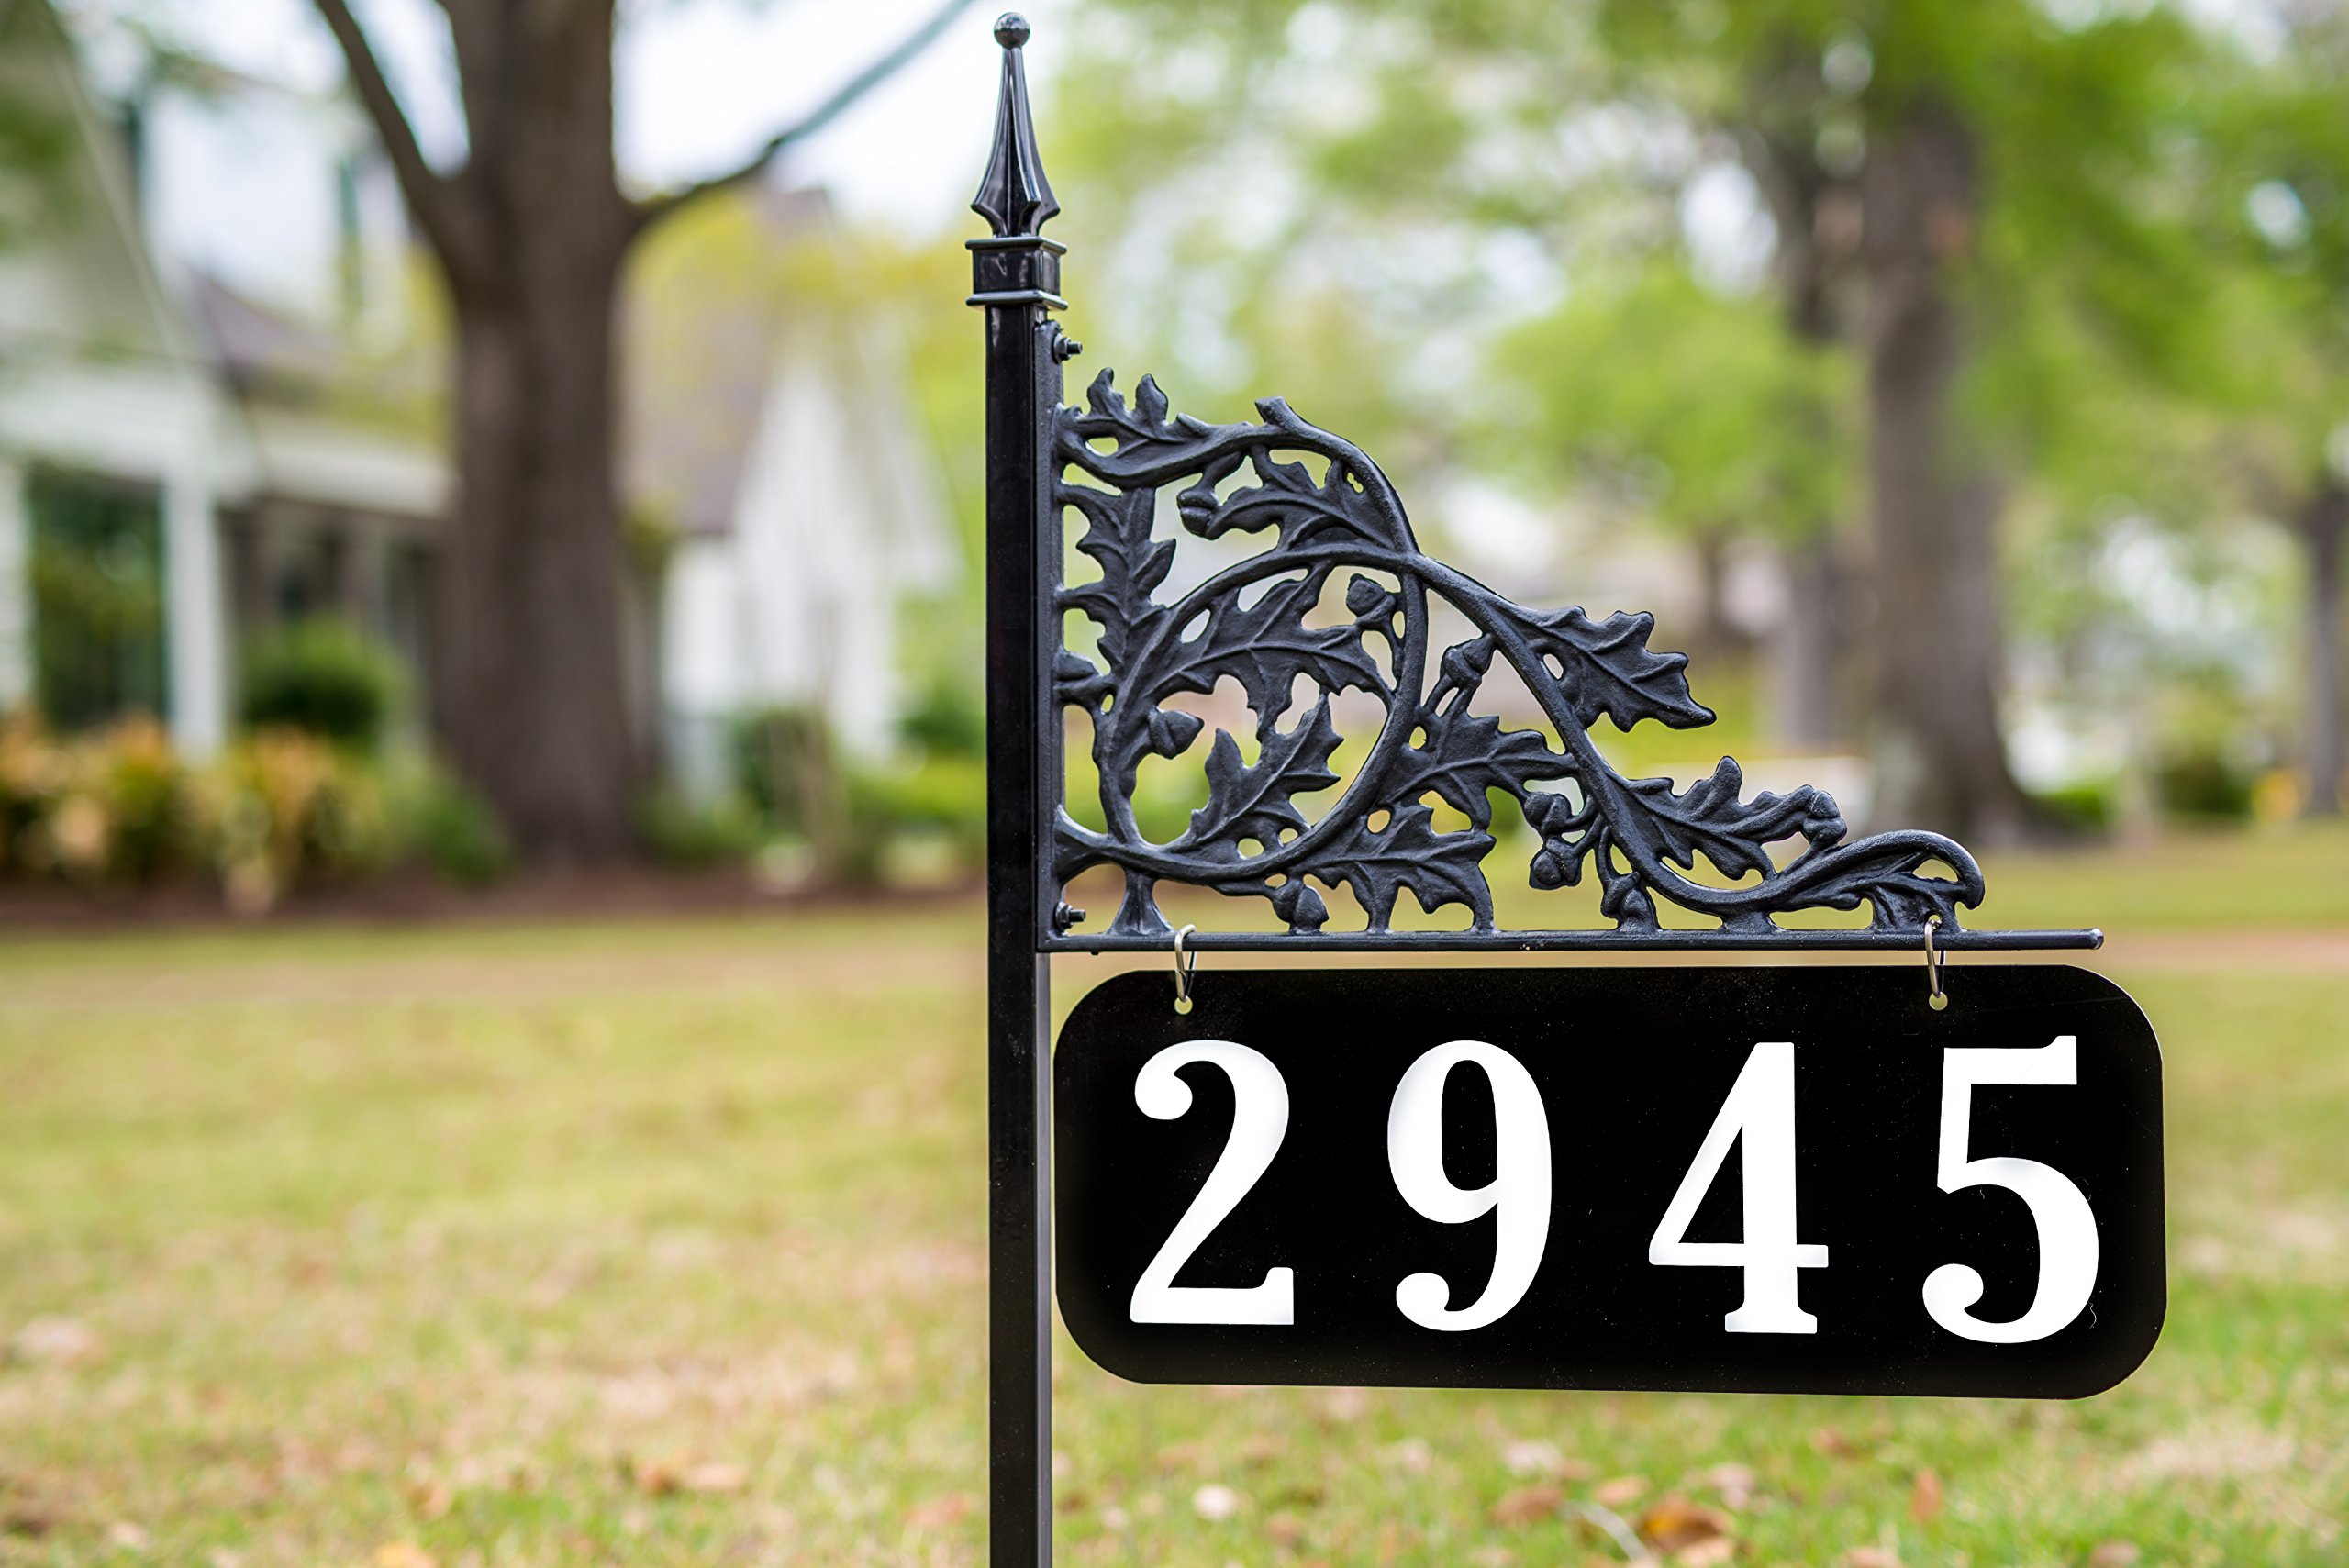 Oak 30 Inch Reflective Address Sign - Double Sided - Easy to Read Day and Night 98% Positive Reviews on Amazon